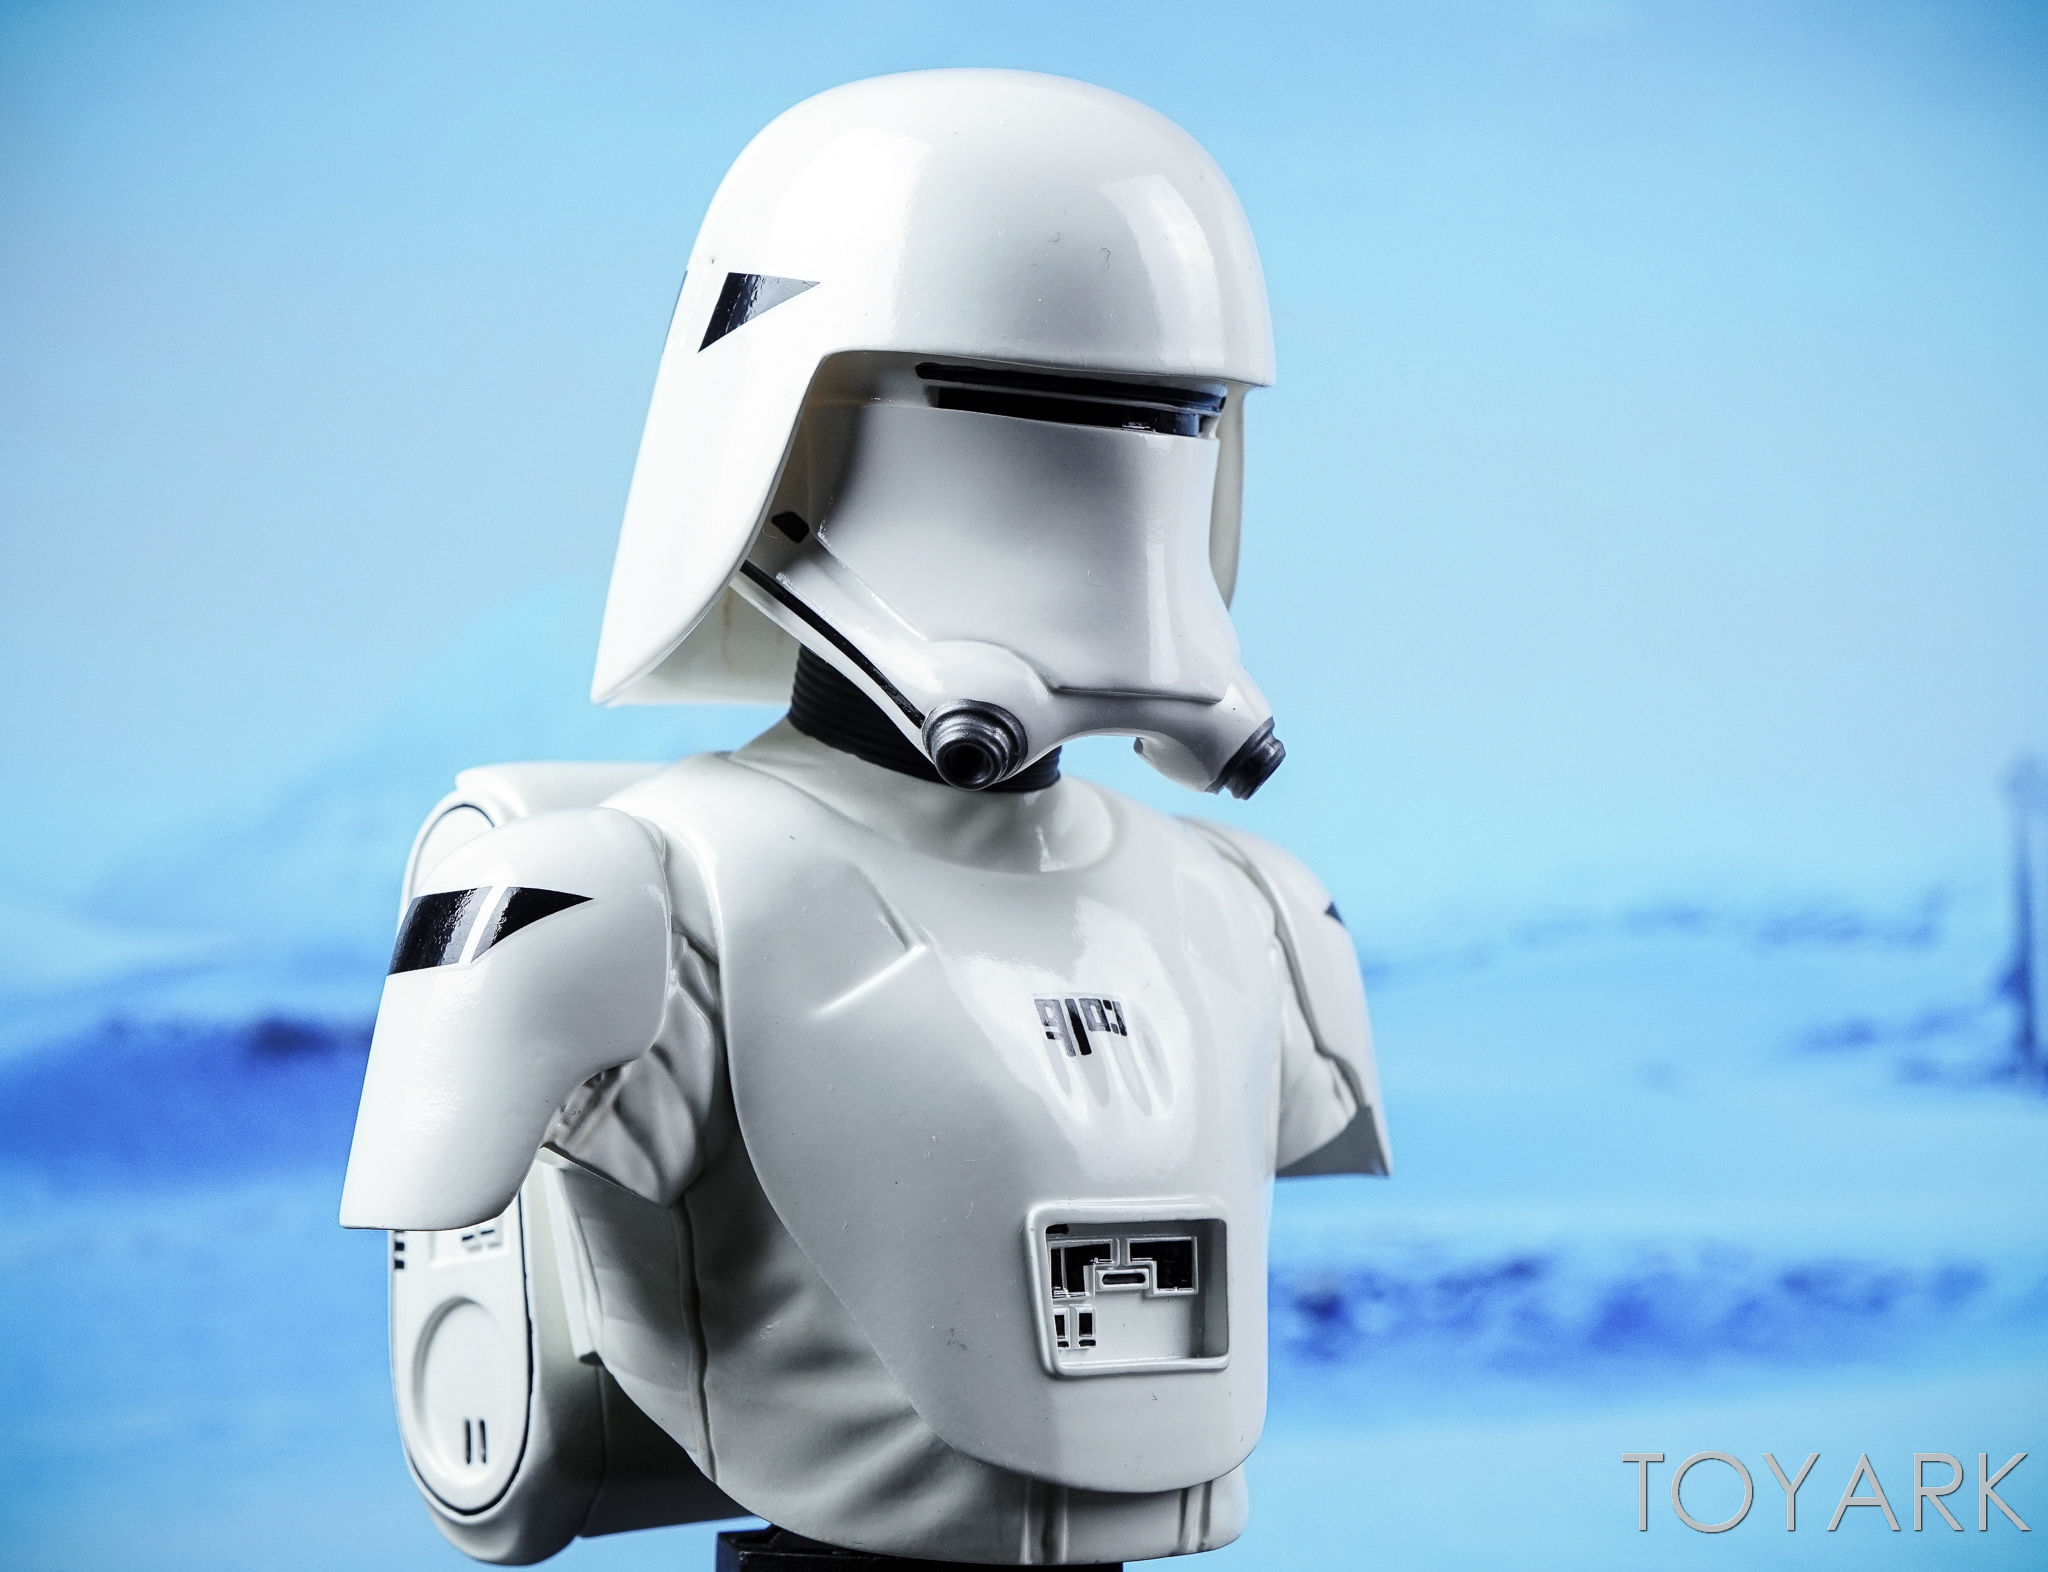 http://news.toyark.com/wp-content/uploads/sites/4/2016/12/Force-Awakens-Snowtrooper-Classic-Bust-029.jpg